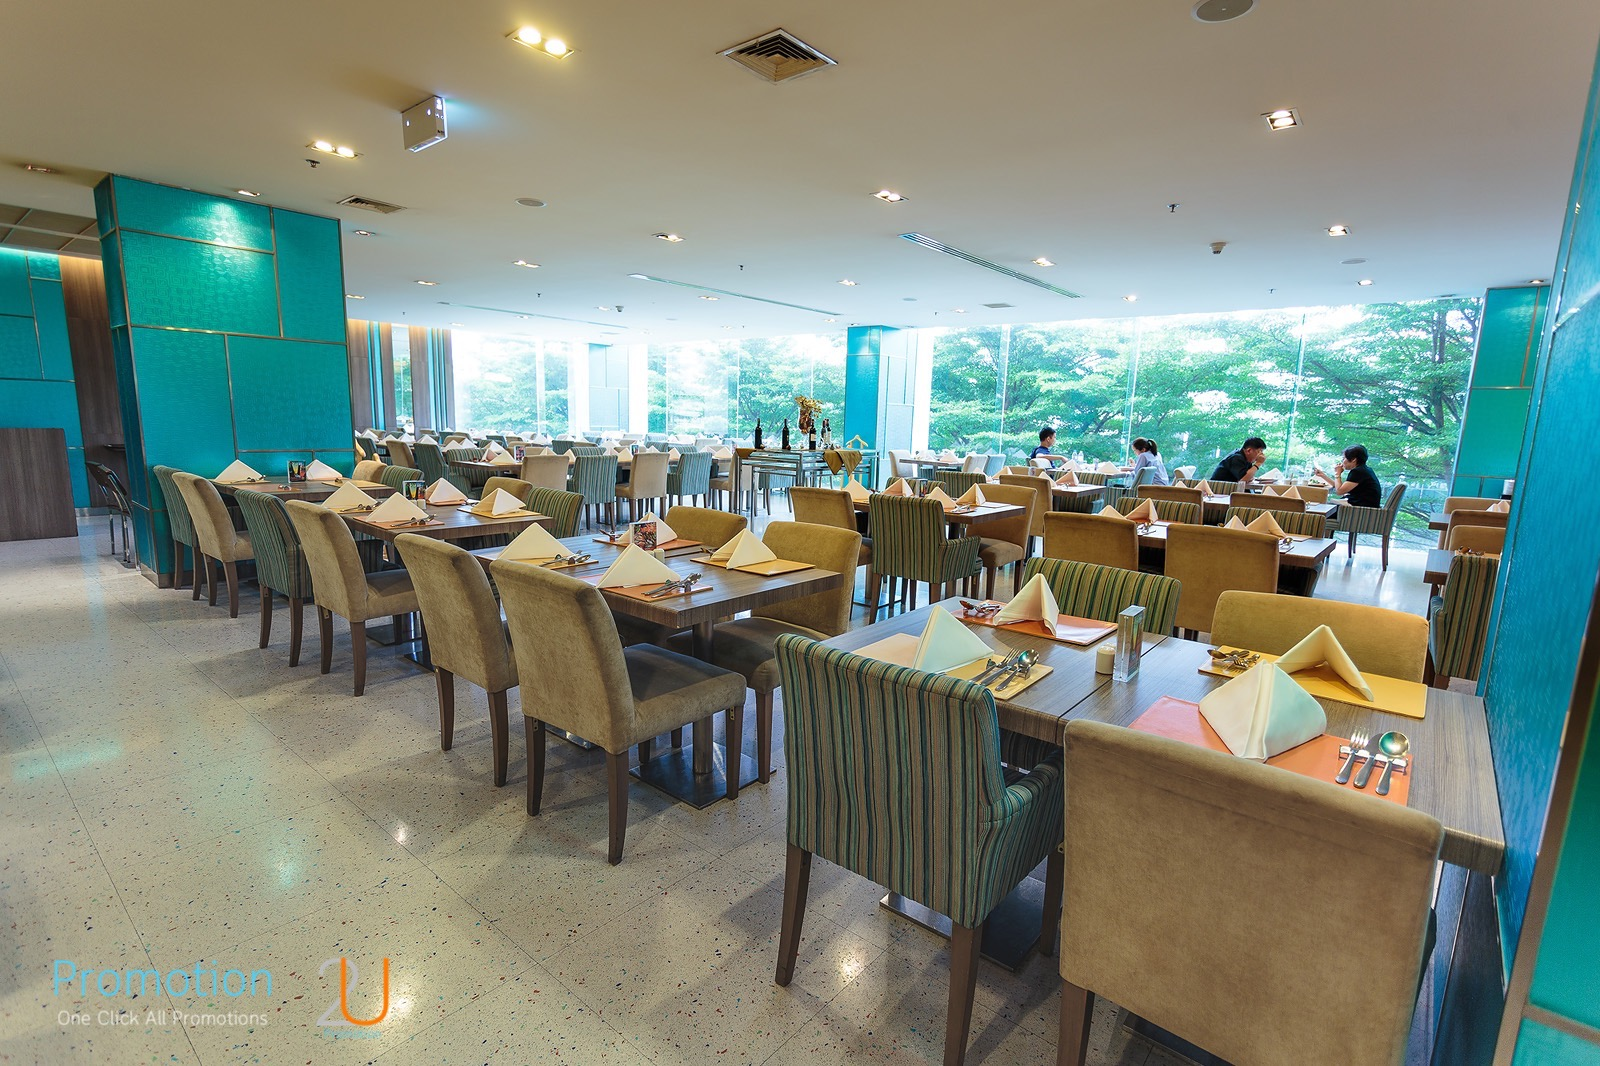 Review promotion muangthong koongtung bufft at the suare novotel impact P77